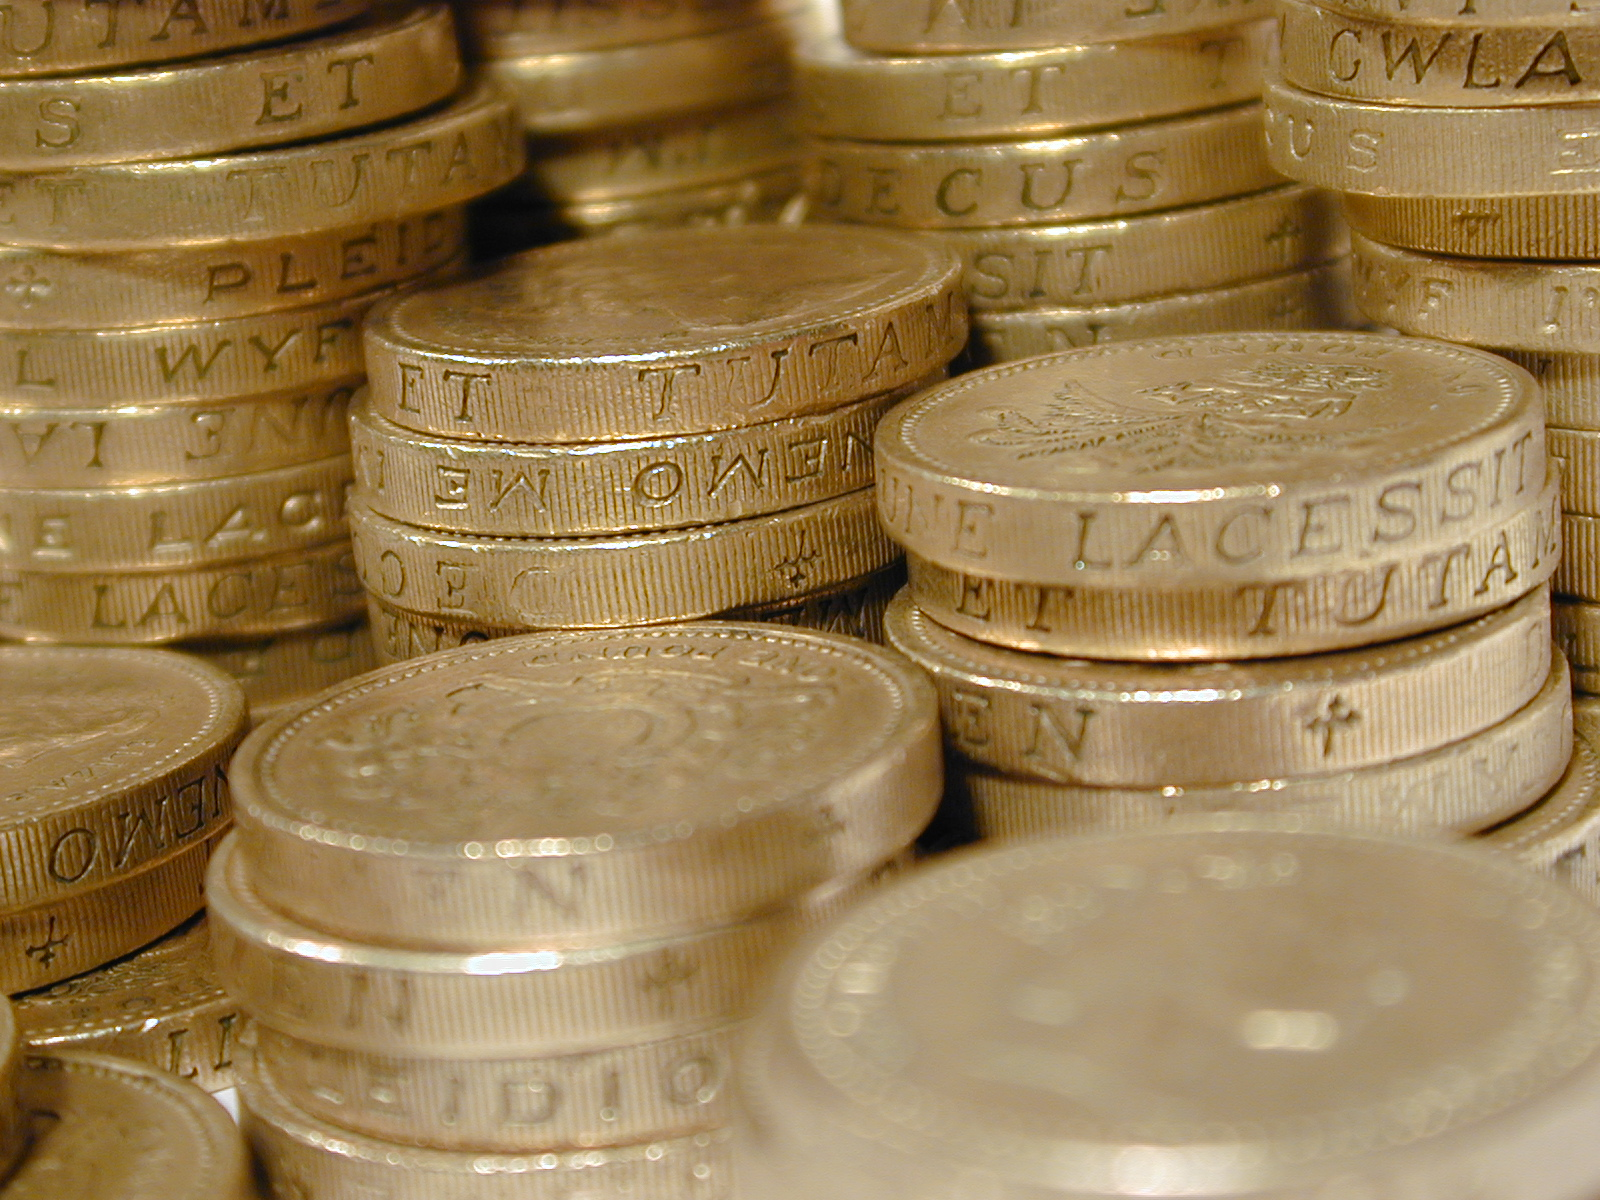 Pound coin, Unemployment, Slow Economic Growth